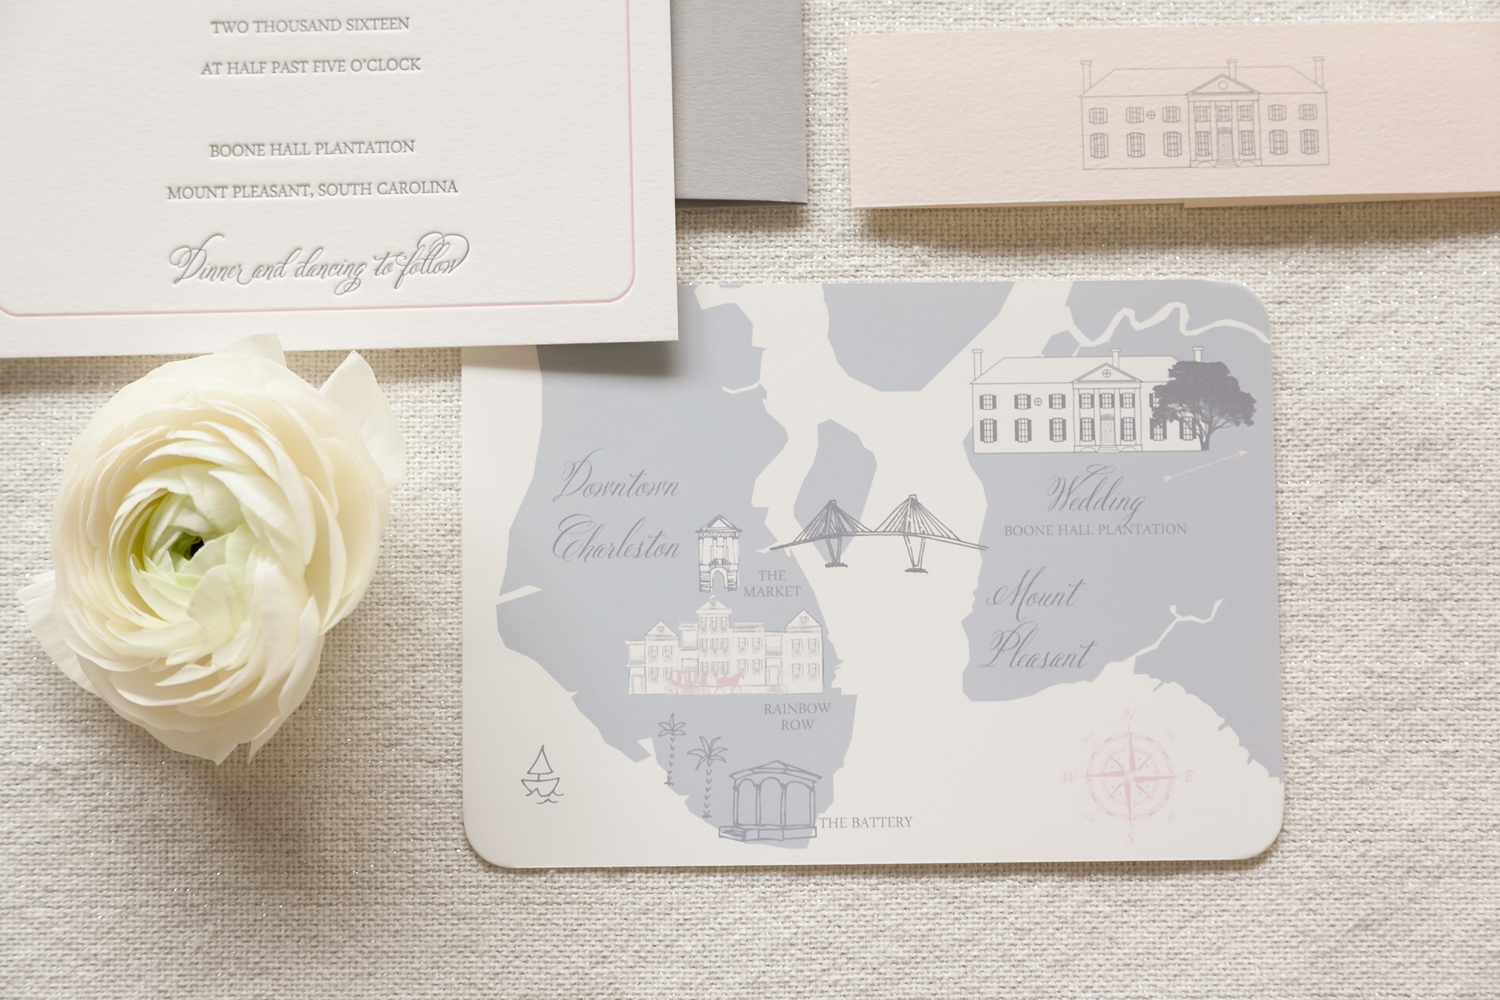 boone-hall-wedding-map - Wedding Invitations, Charleston graphic ...